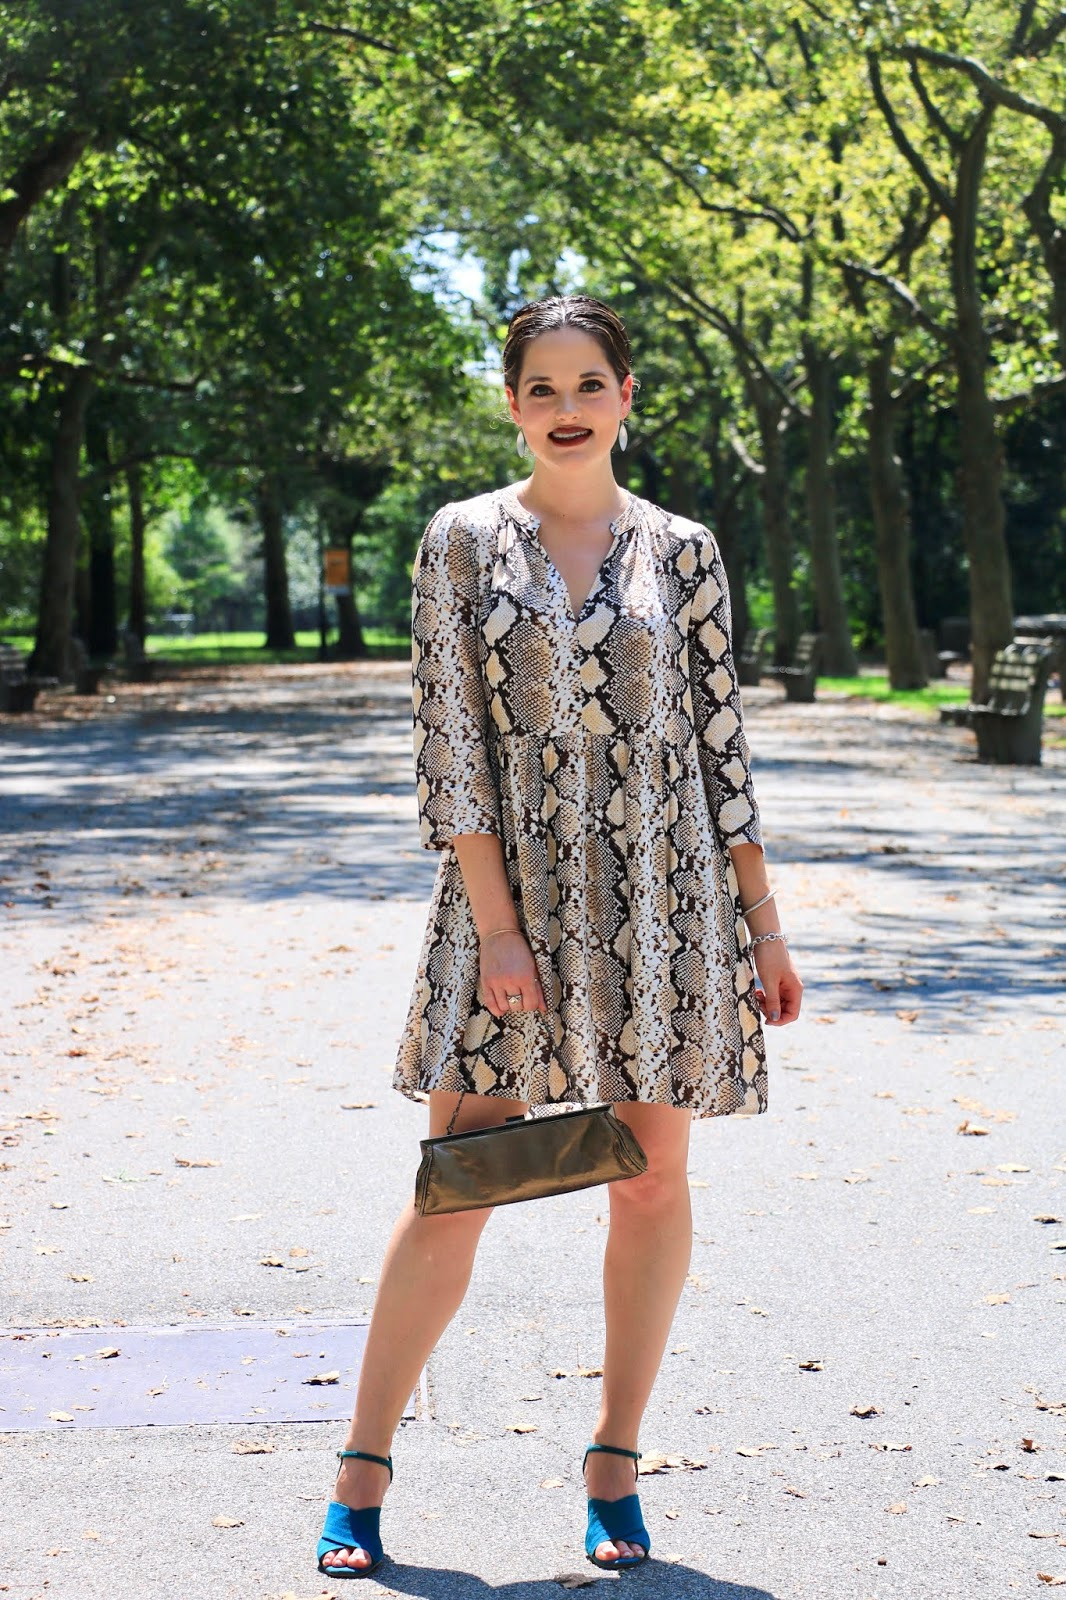 Nyc fashion blogger Kathleen Harper wearing a cute fall dress from Anthropologie.